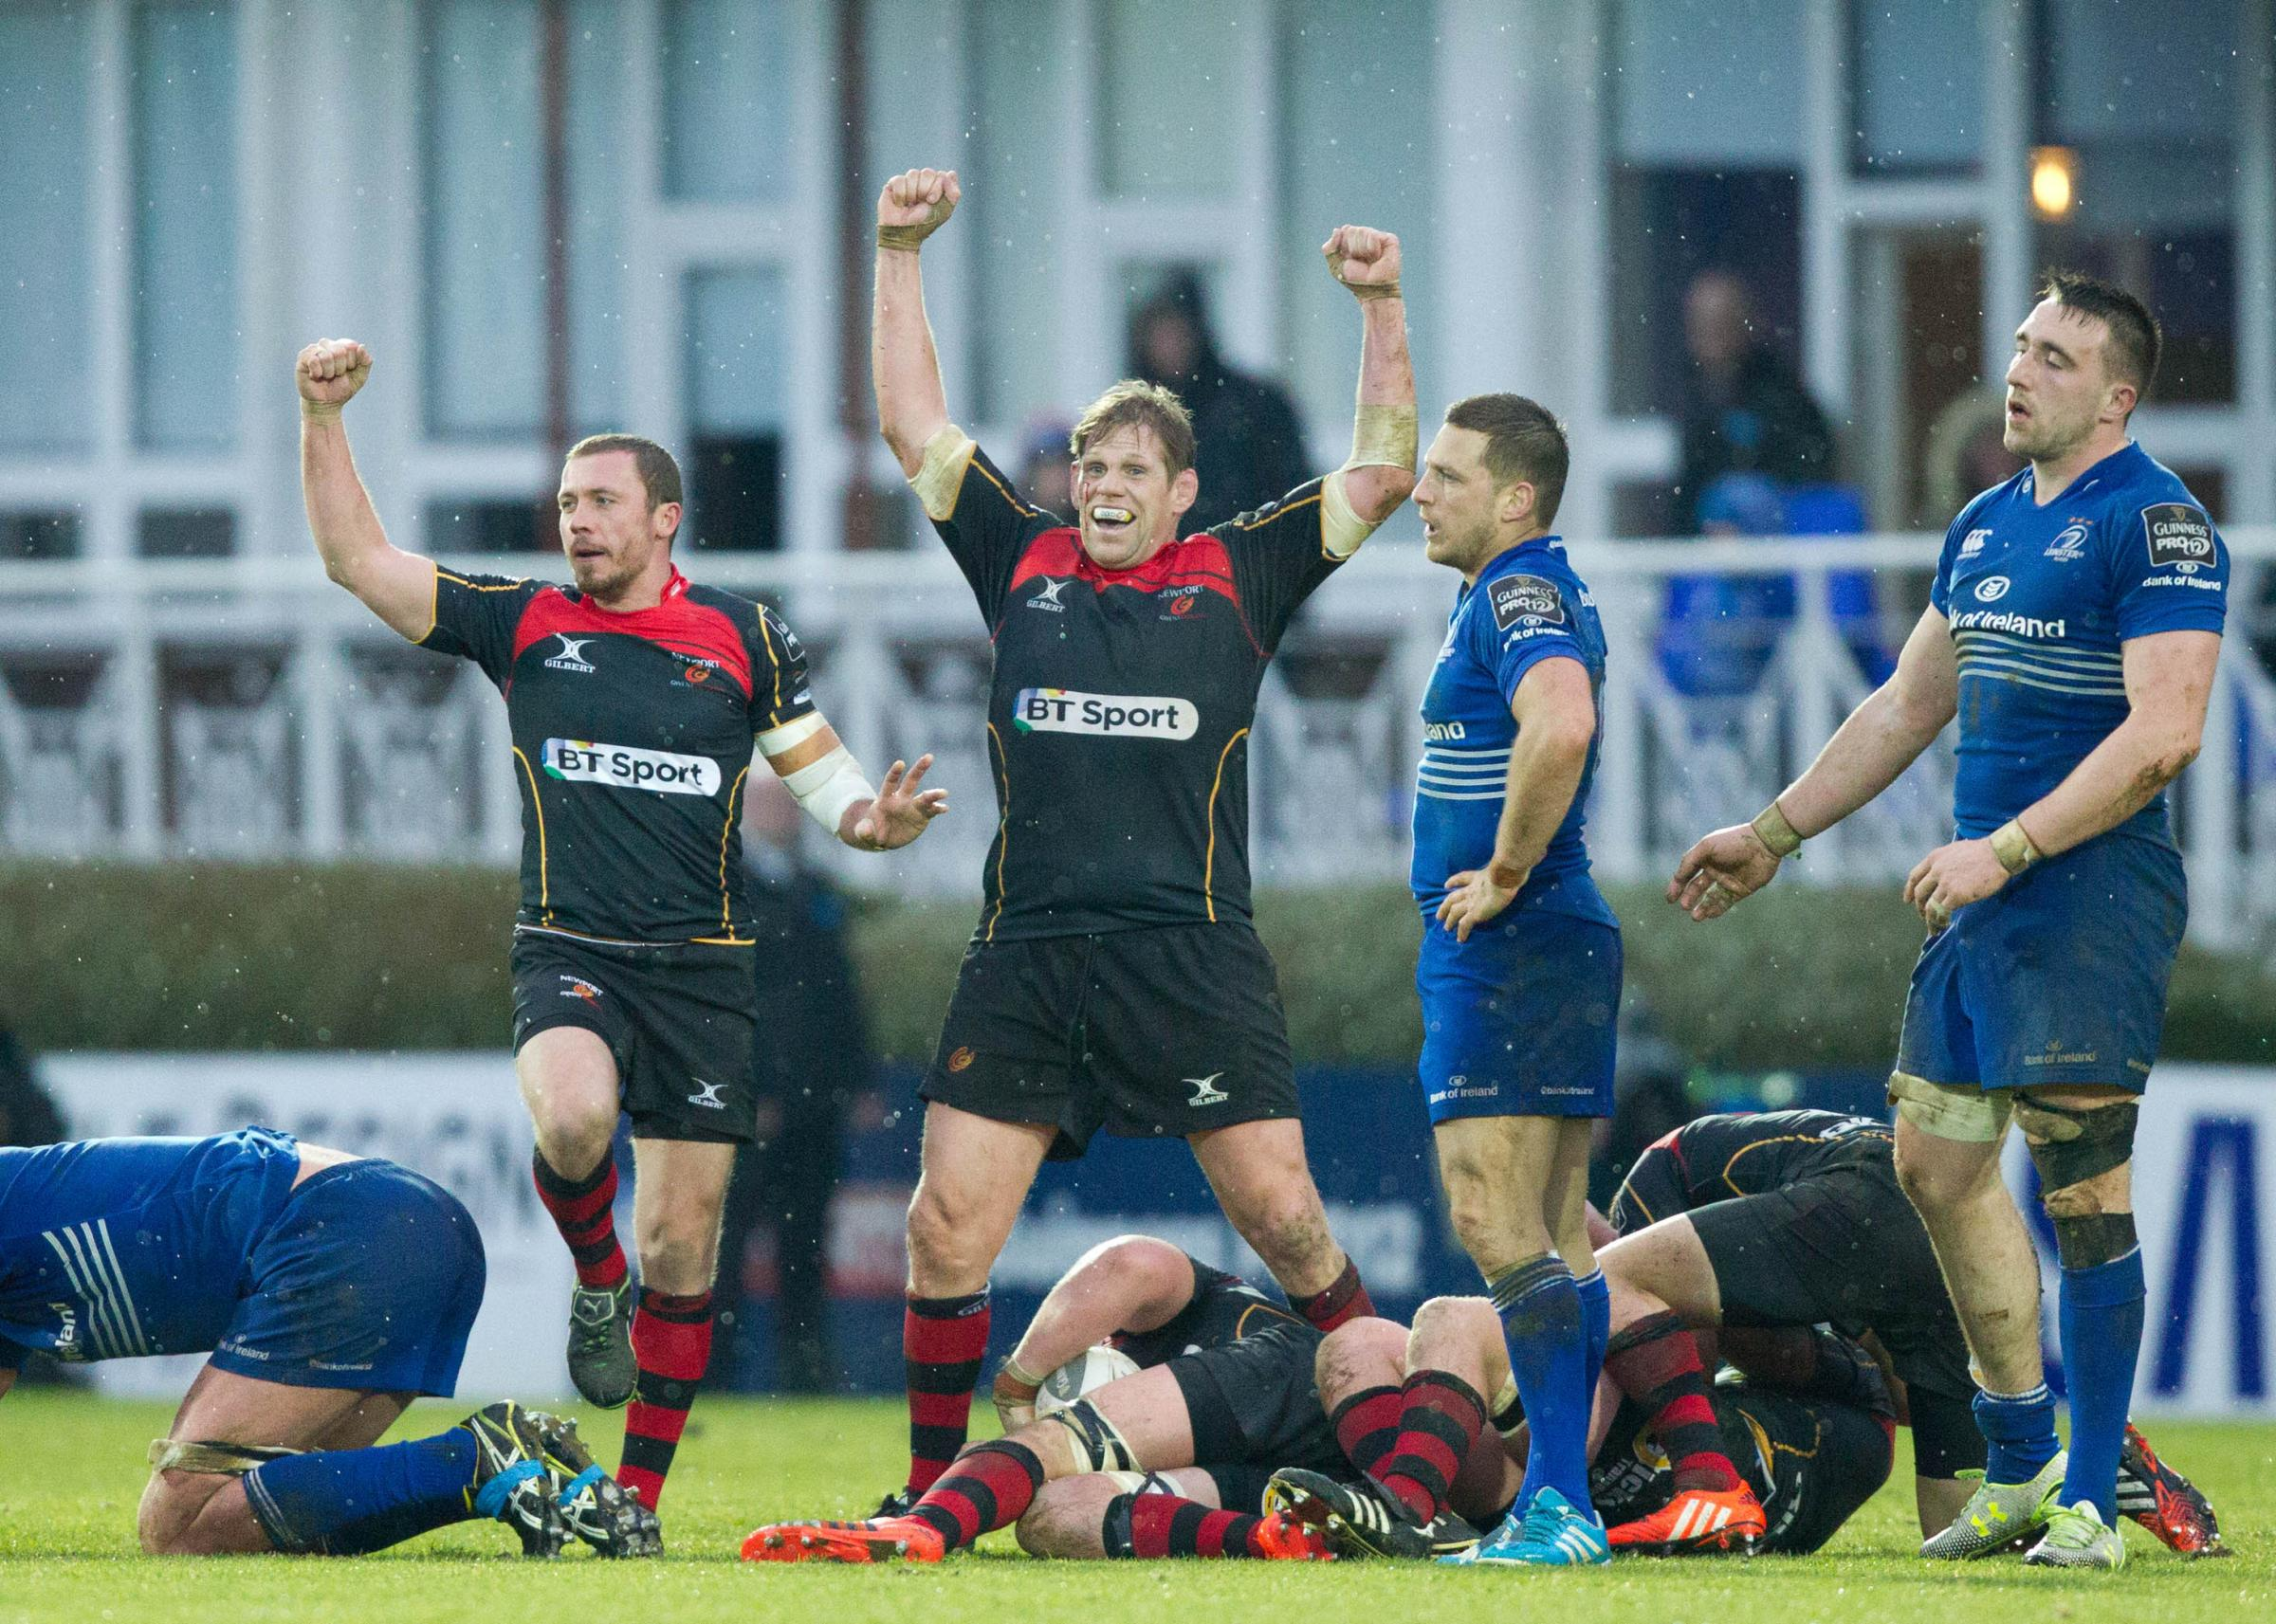 RARE IRISH WIN: Richie Rees and Rhys Thomas celebrate the Dragons' win at Leinster in 2015, a feat unlikely to be repeated on Saturday